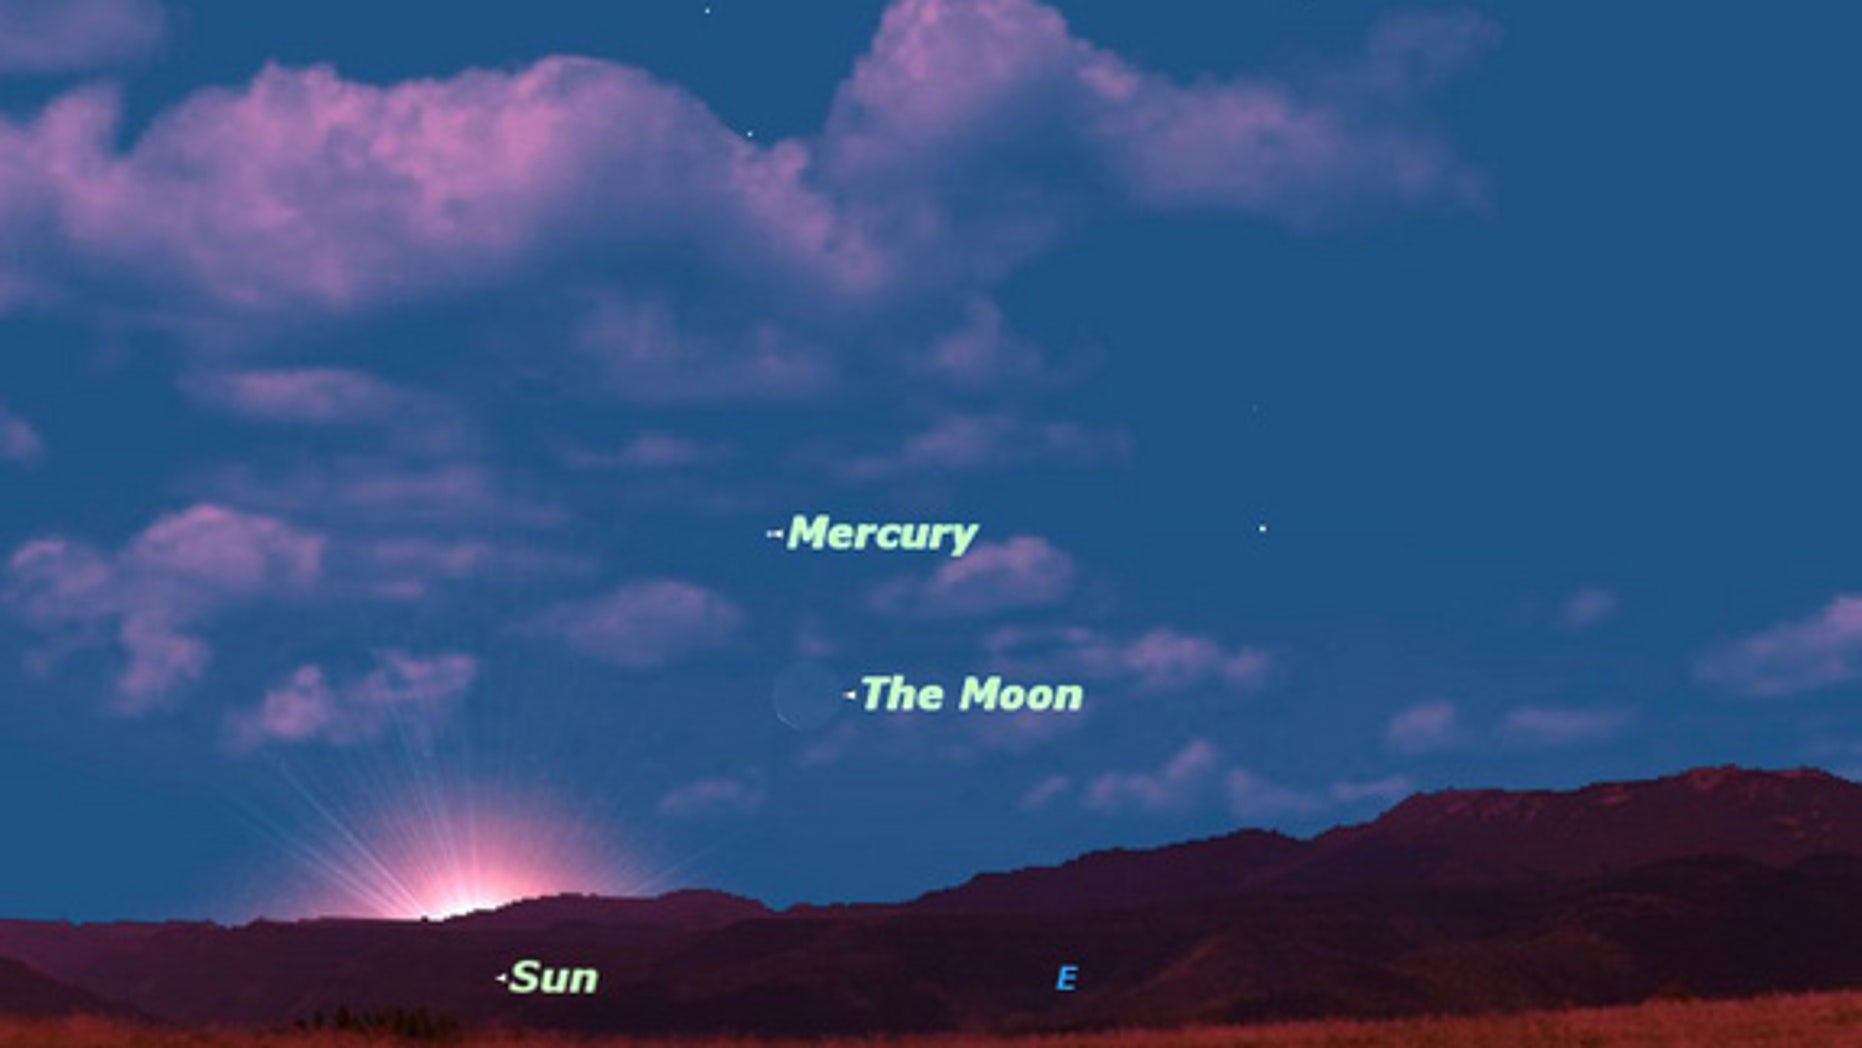 At sunrise on Thursday August 16, Mercury and Venus are both as far from the sun in the sky as they can get. The crescent moon will help you to find Mercury.